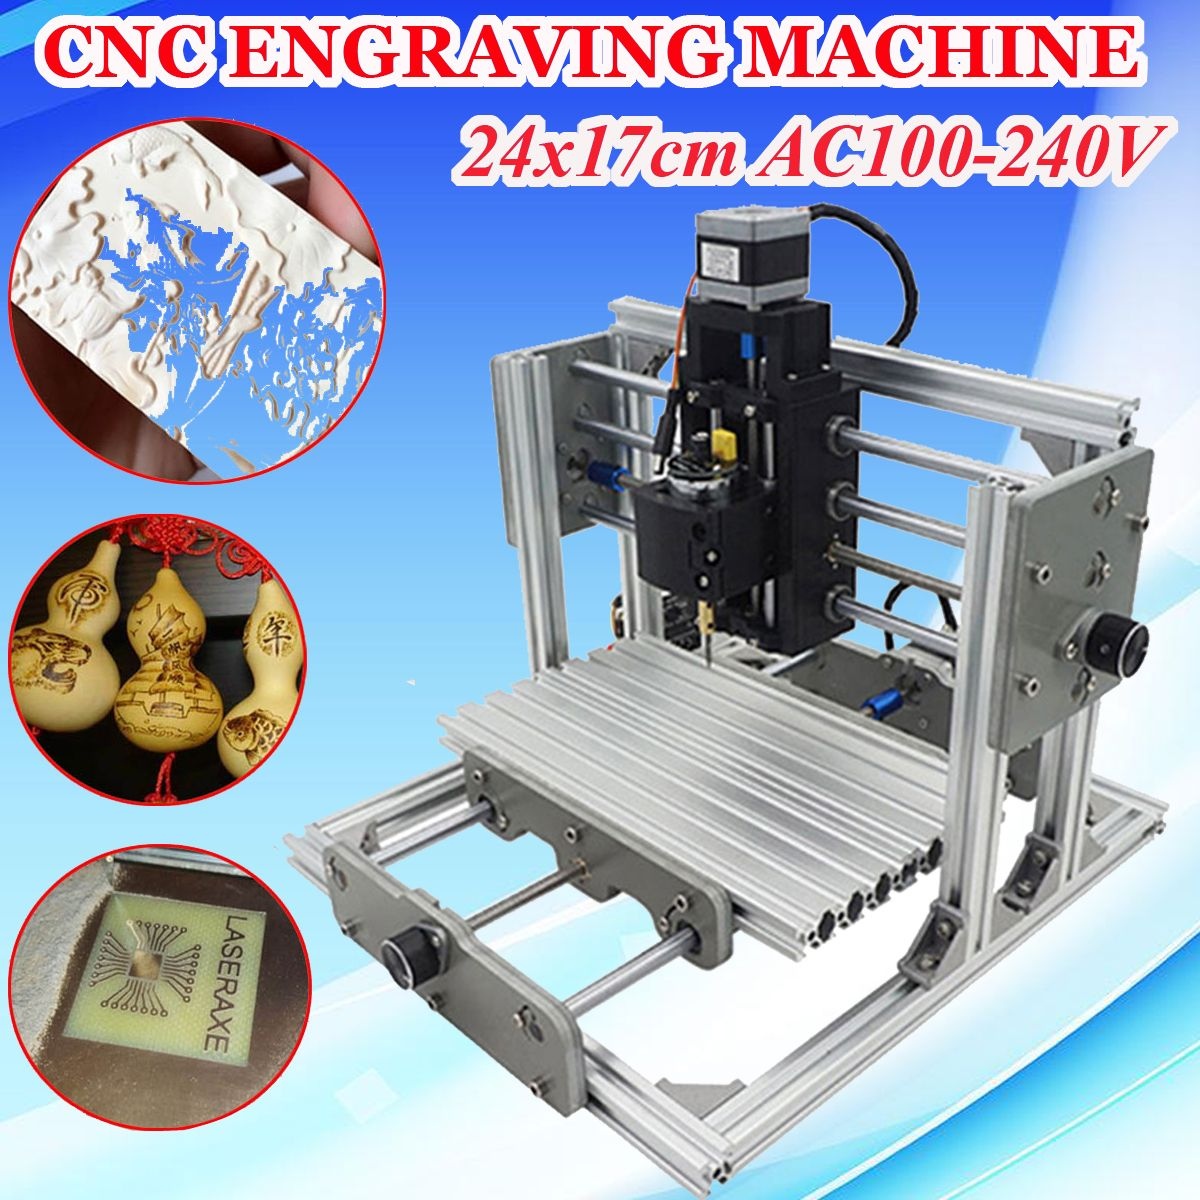 DIY CNC Engraving Milling Machine Assembly Kit Mini 3 Axis PCB Milling Machine Wood Router Laser Engraver Working Area 24x17cm